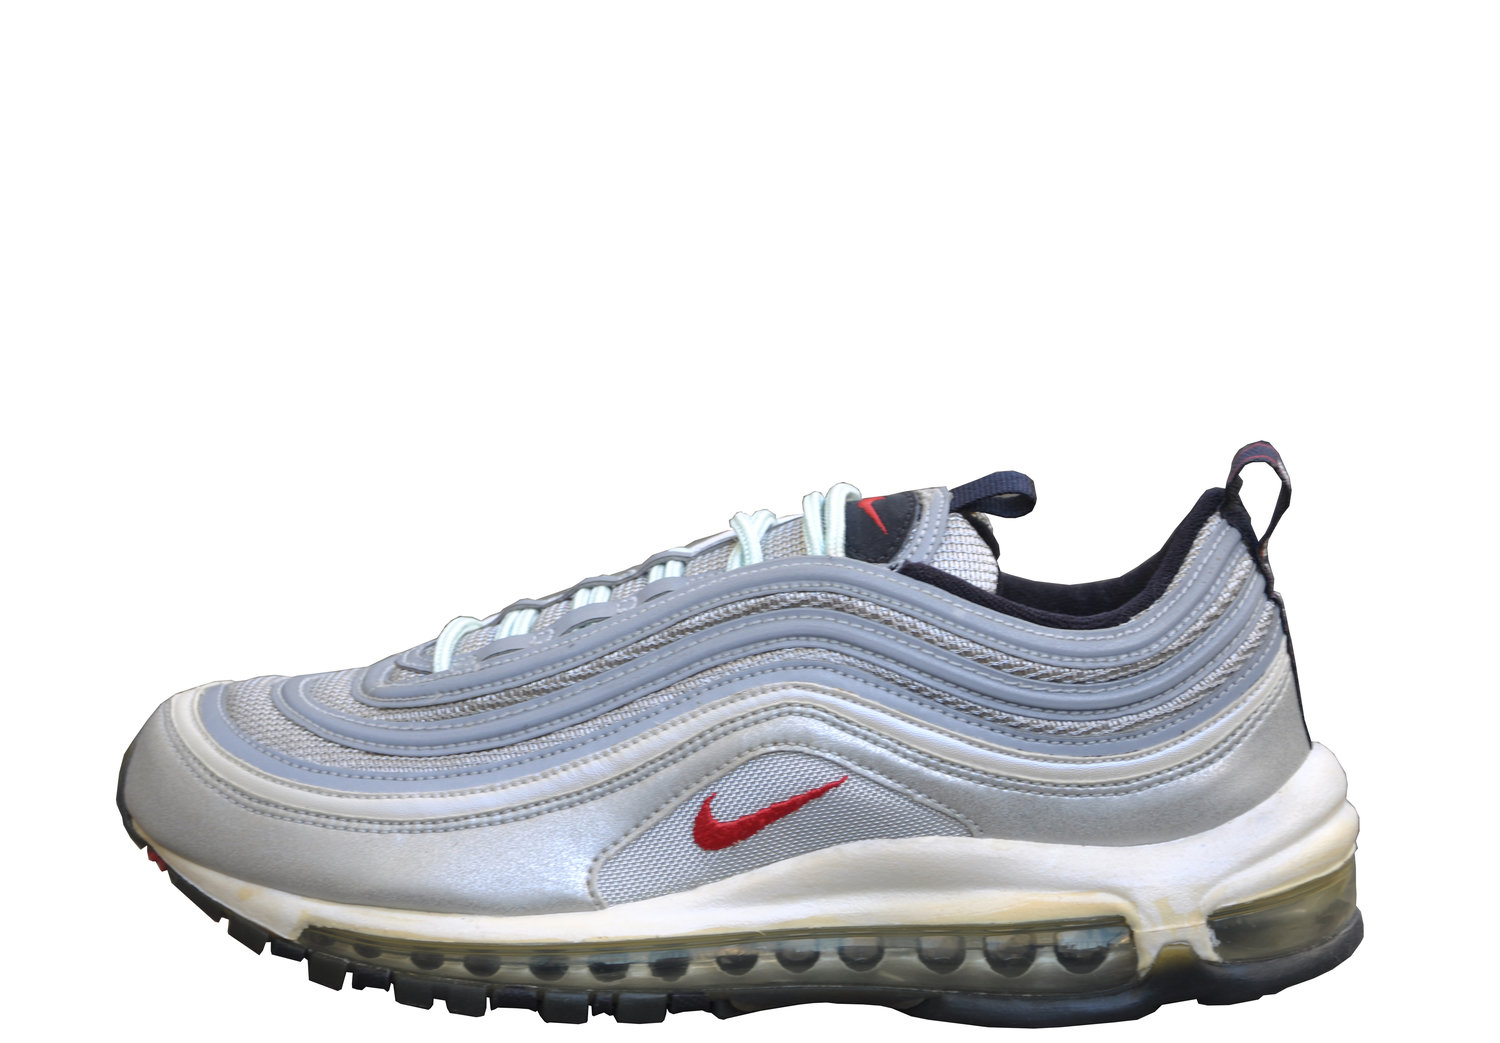 the best attitude 3d994 bef3a Nike Air Max 97 Silver Varsity Red HOA (Size 7.5) DS — Roots